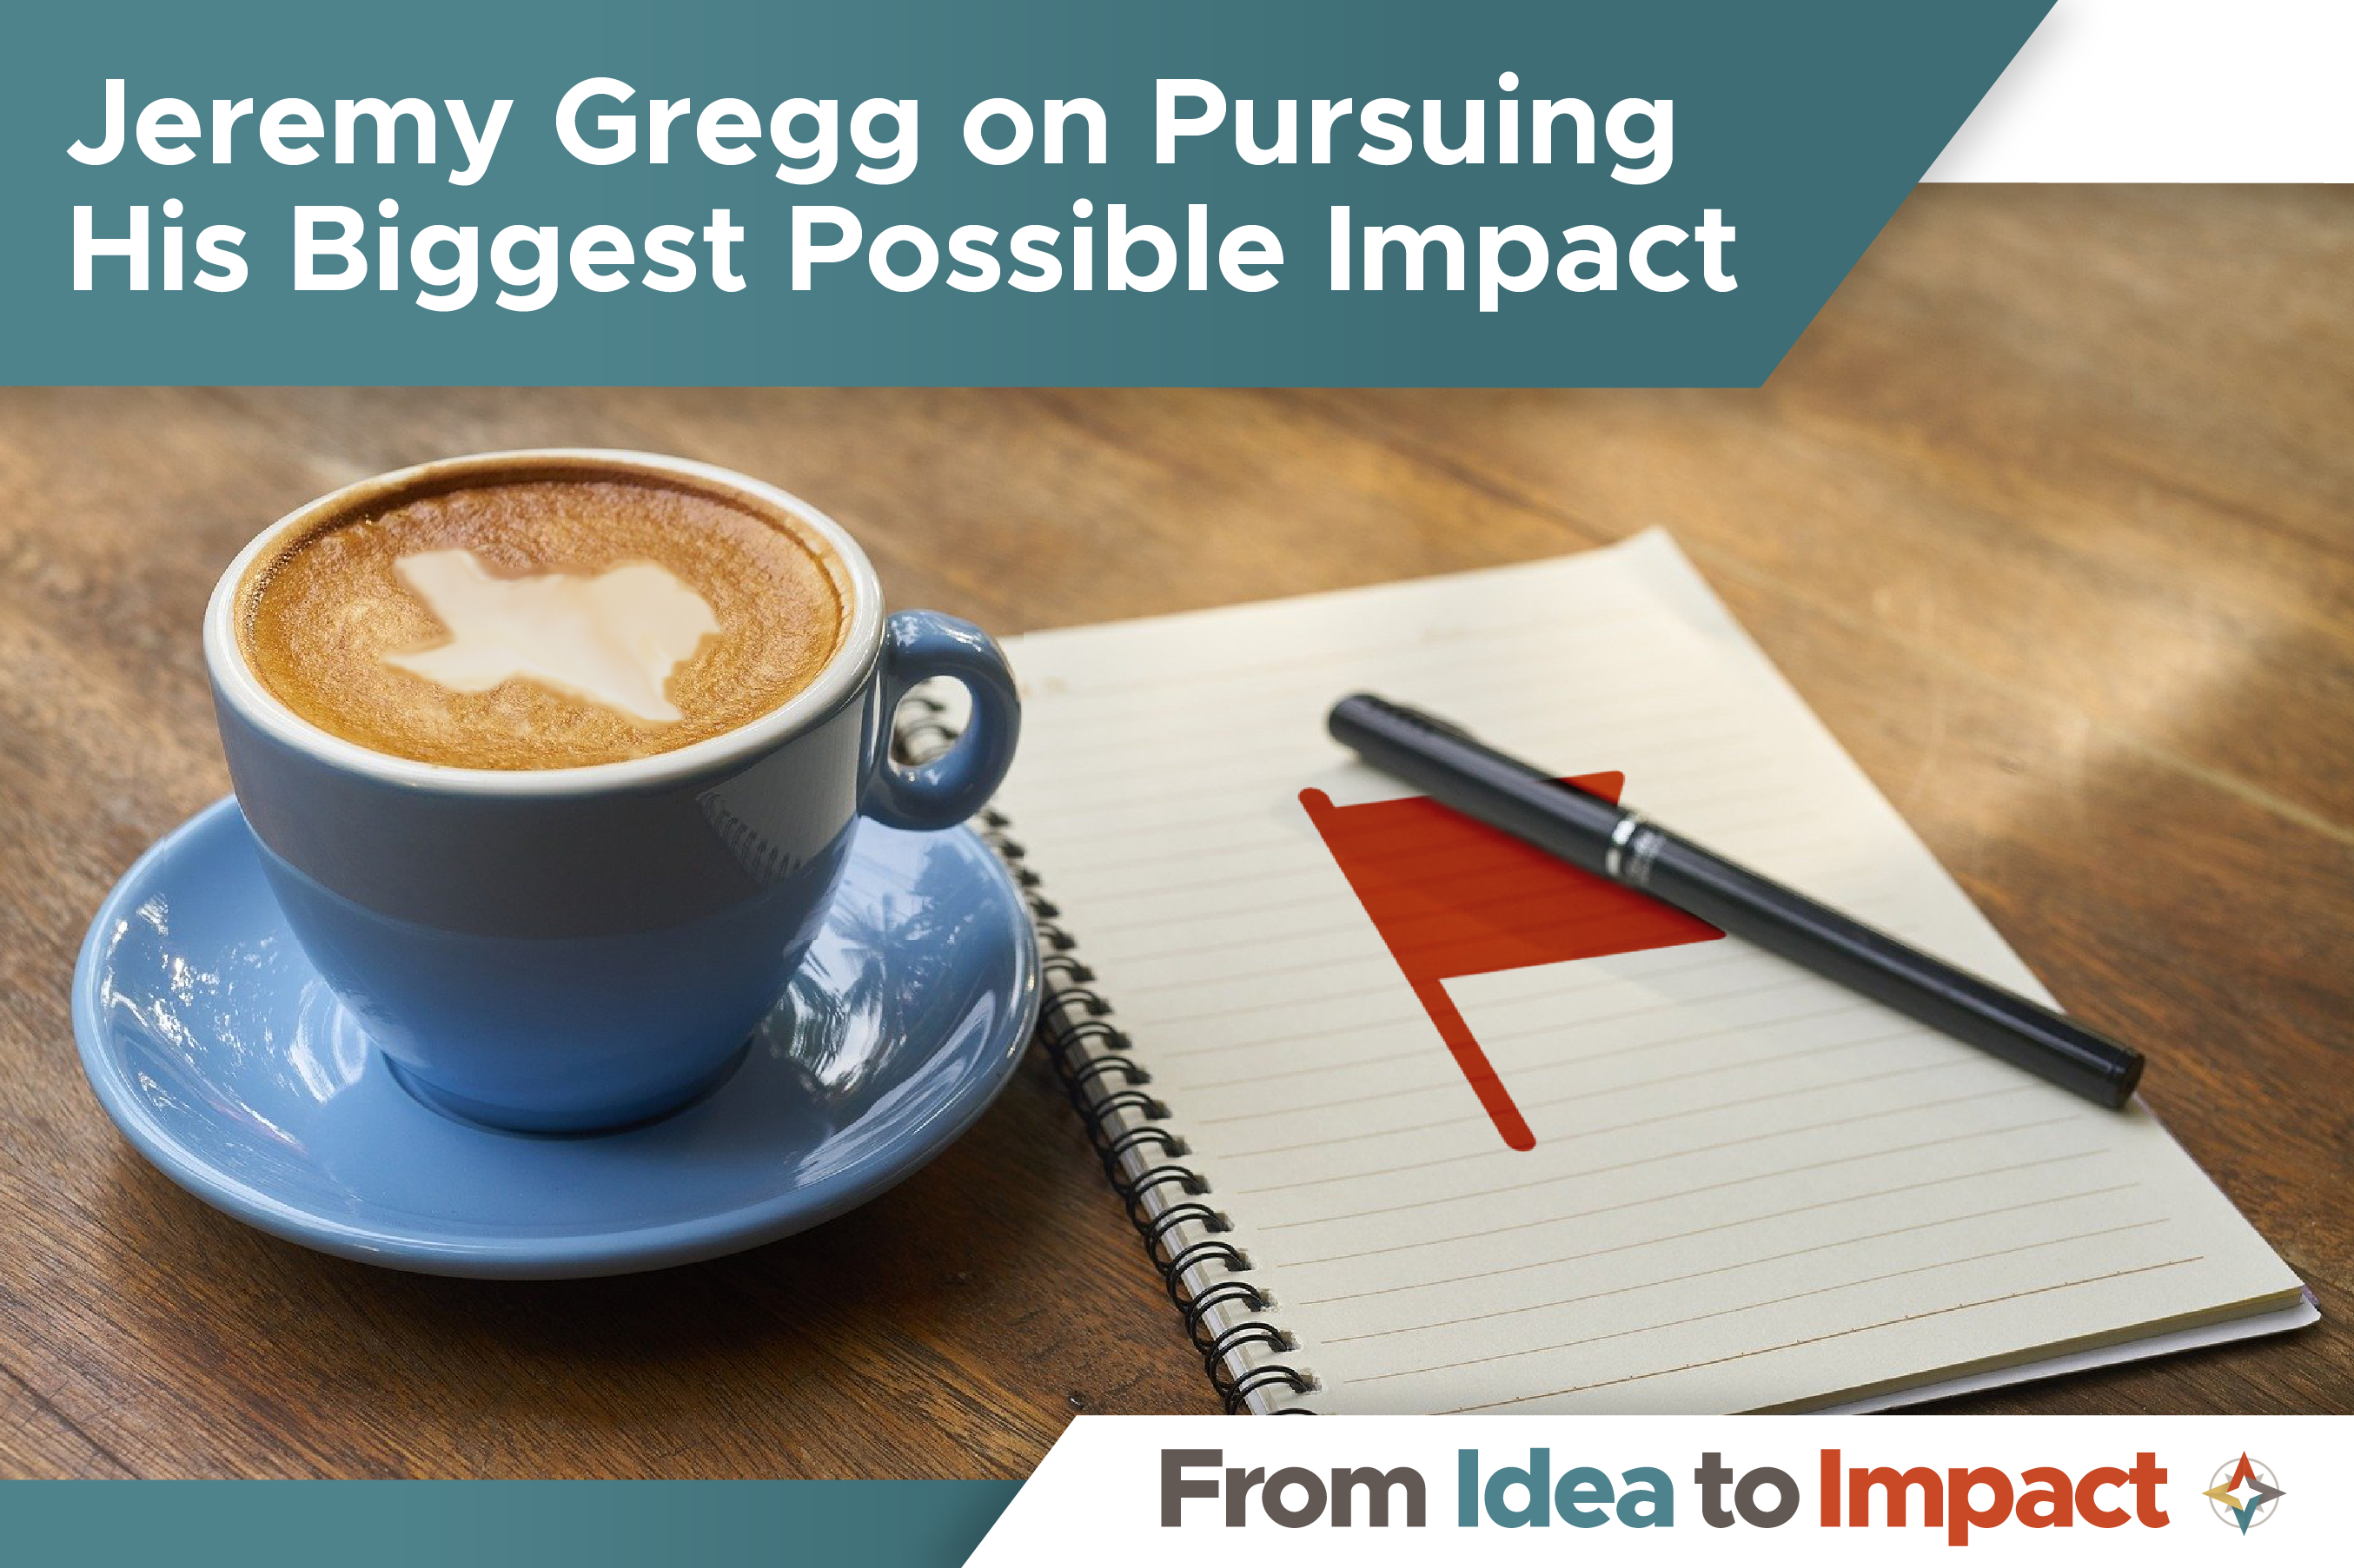 Pursuing My Biggest Possible Impact